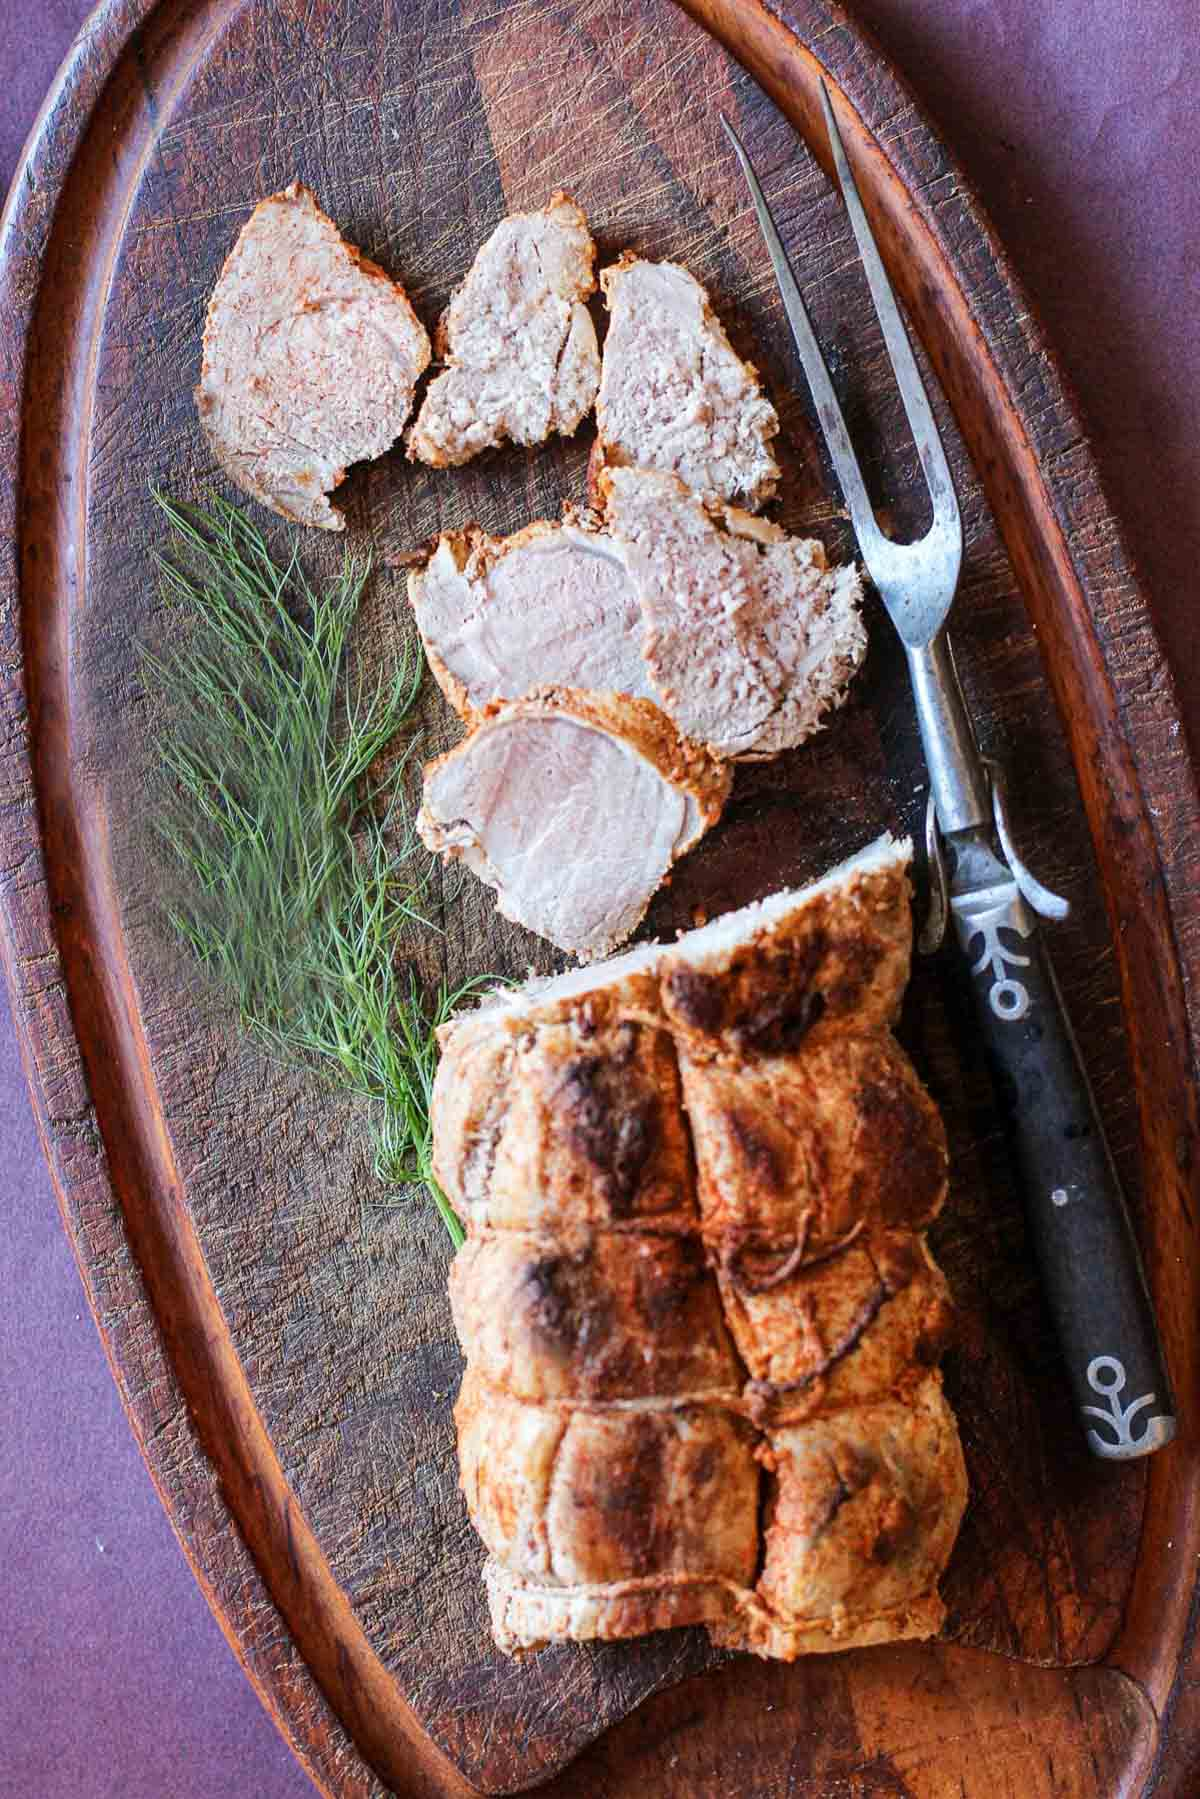 Pork tenderloin sliced on a cutting board that's been rubbed with cooking spices